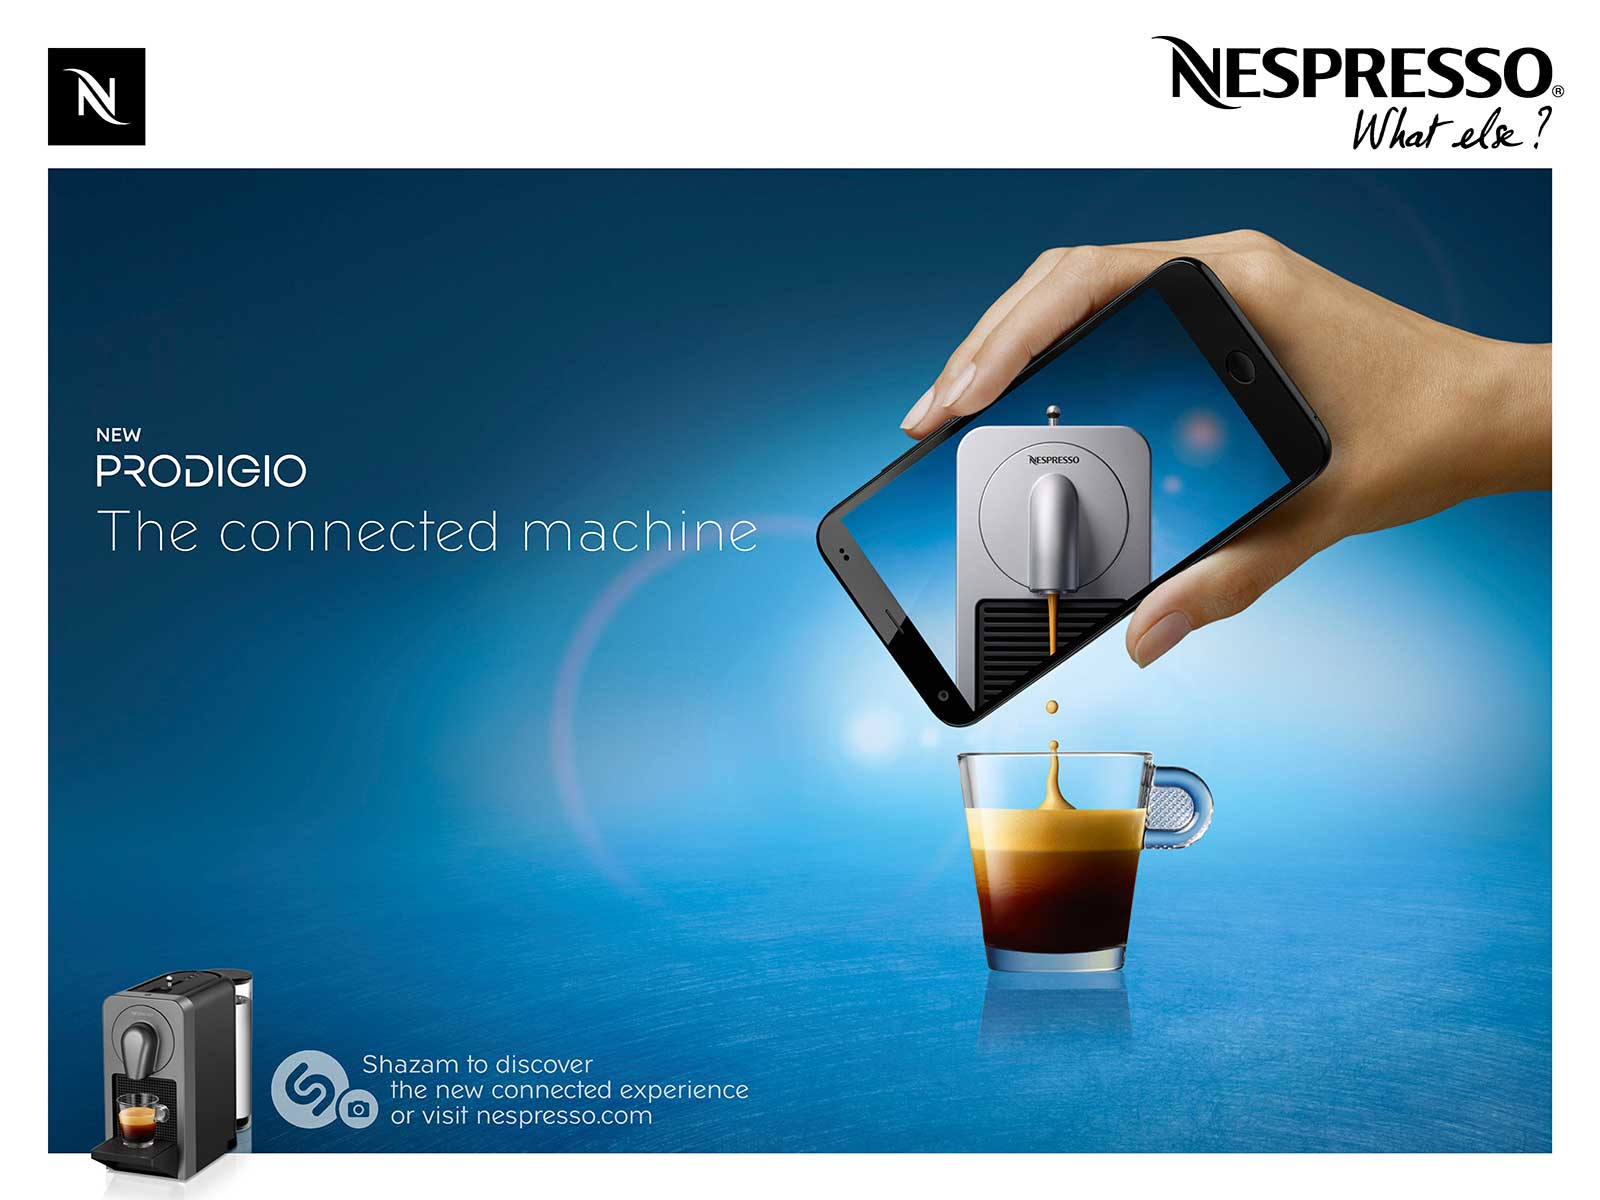 Squids Network Nespresso Machine Prodigio Key visual